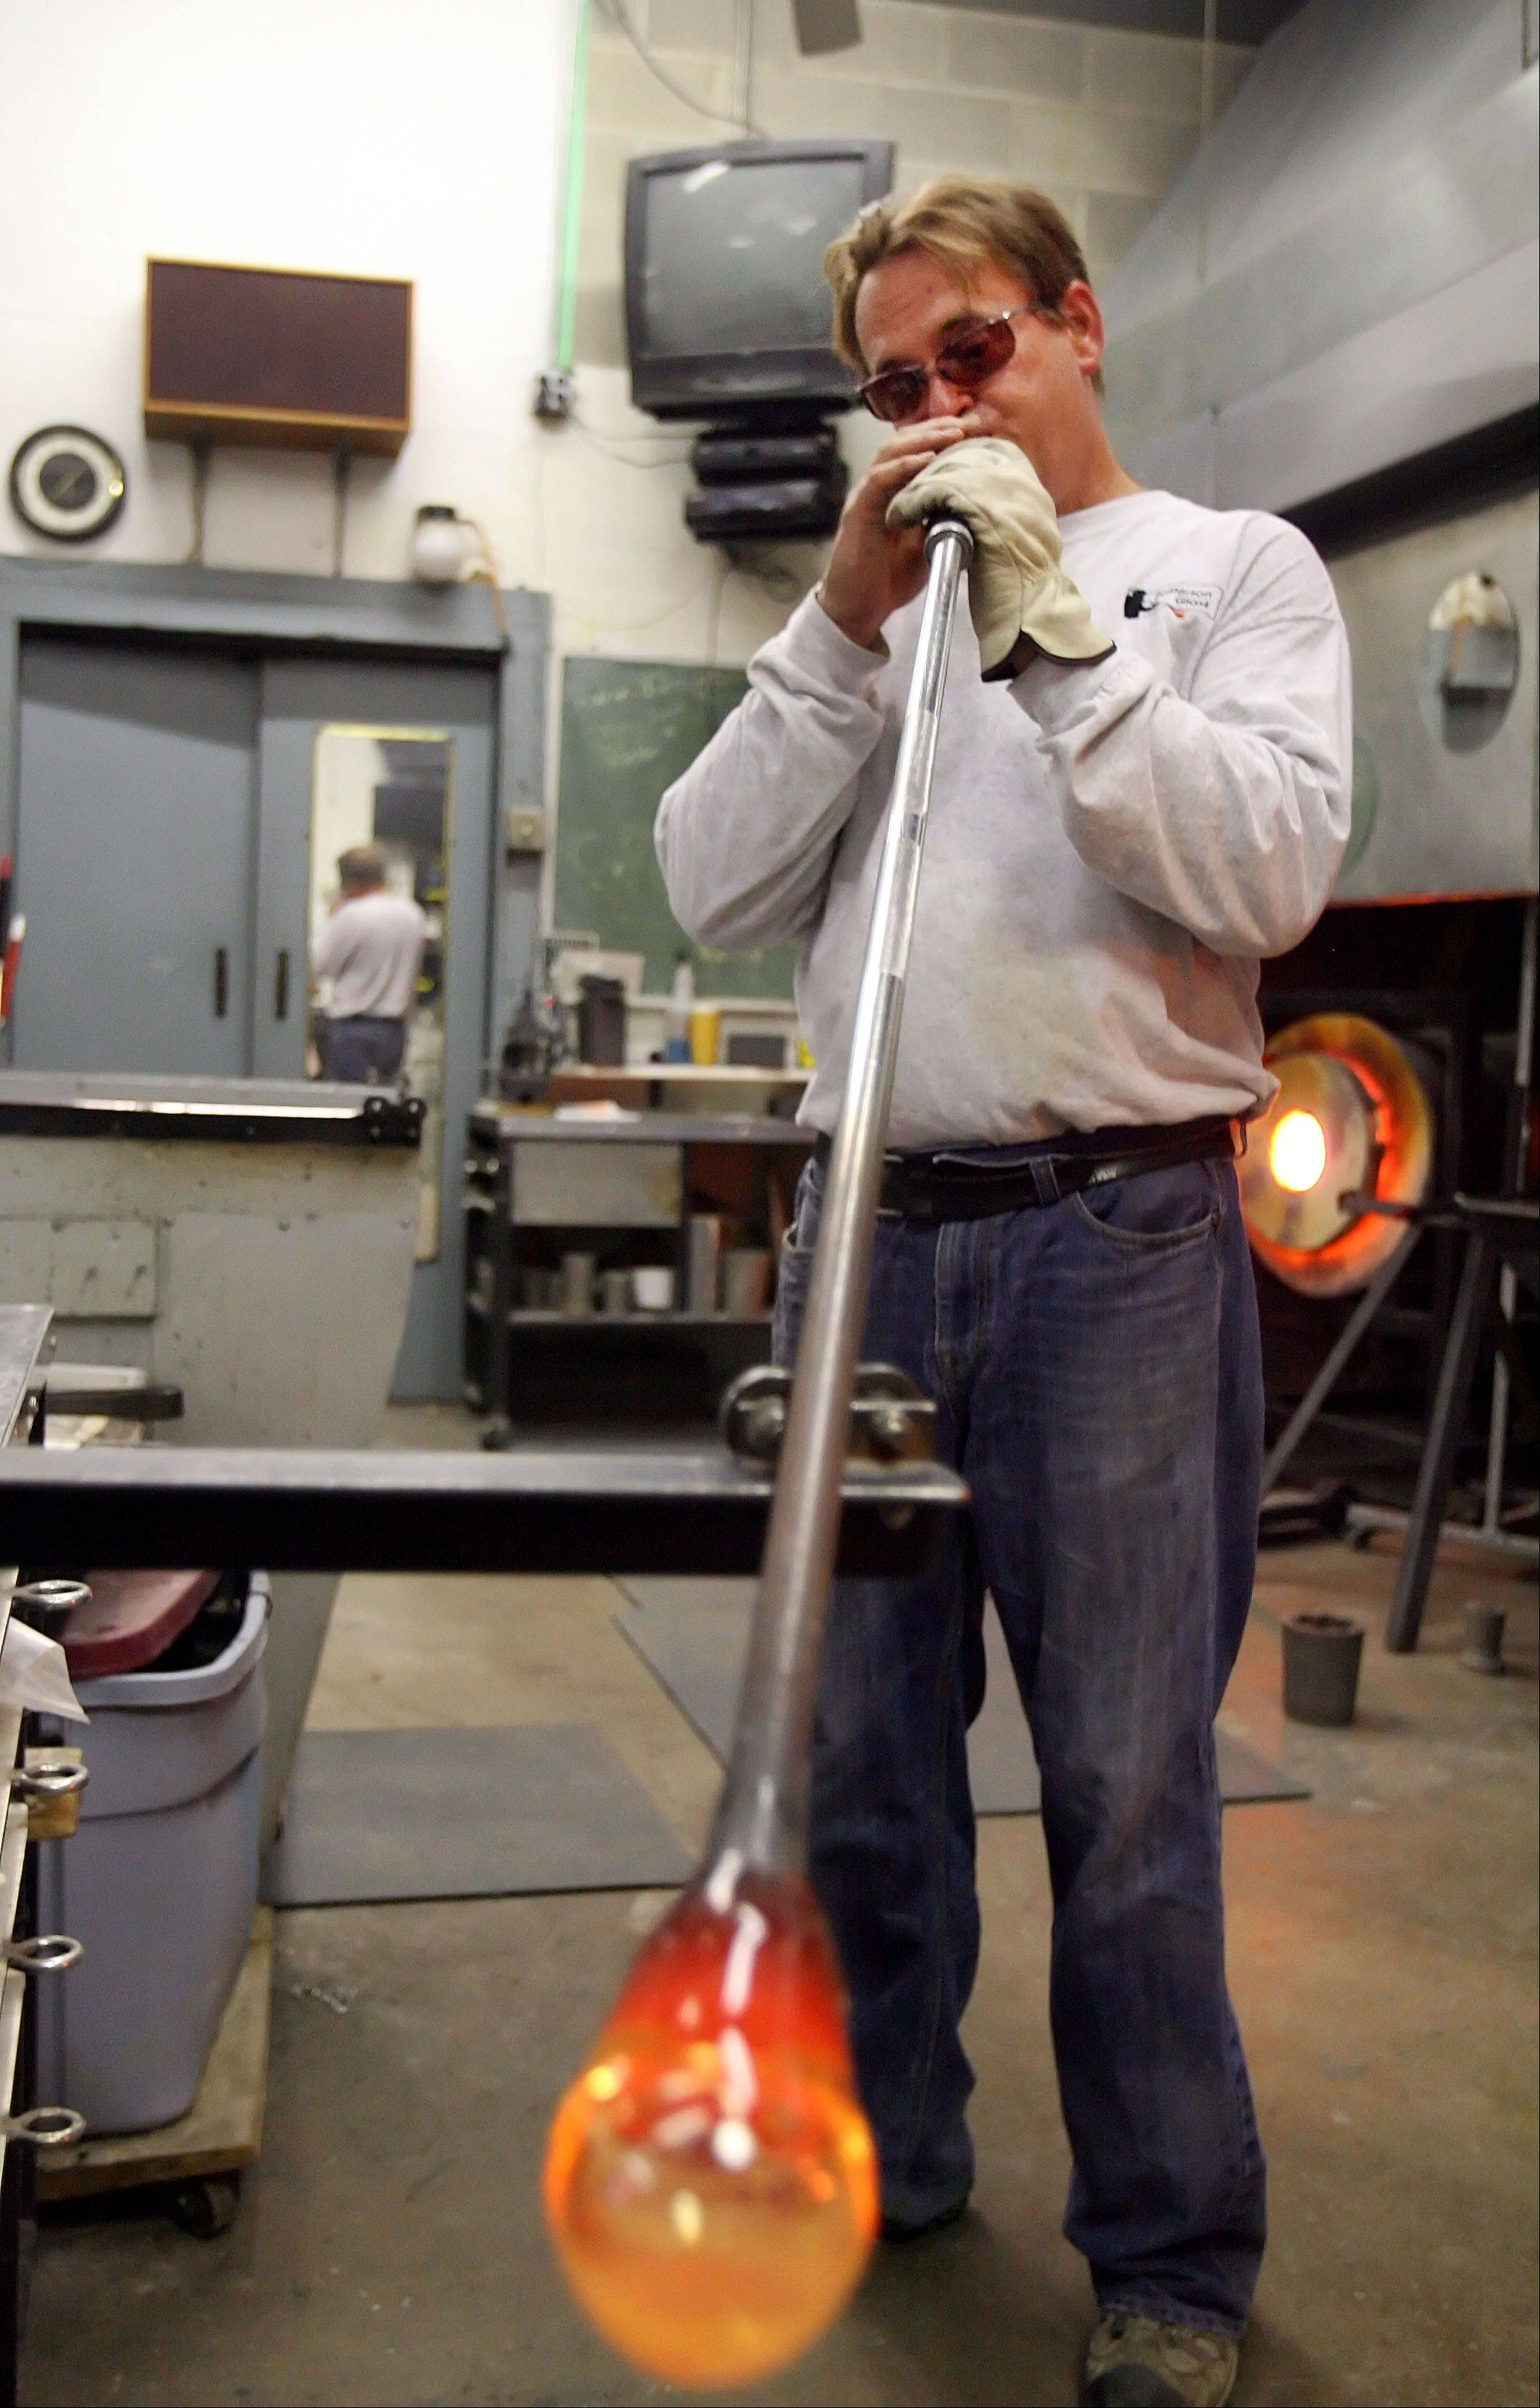 Glass artist Peter Patterson makes glass expand by blowing through a stainless steel tube.